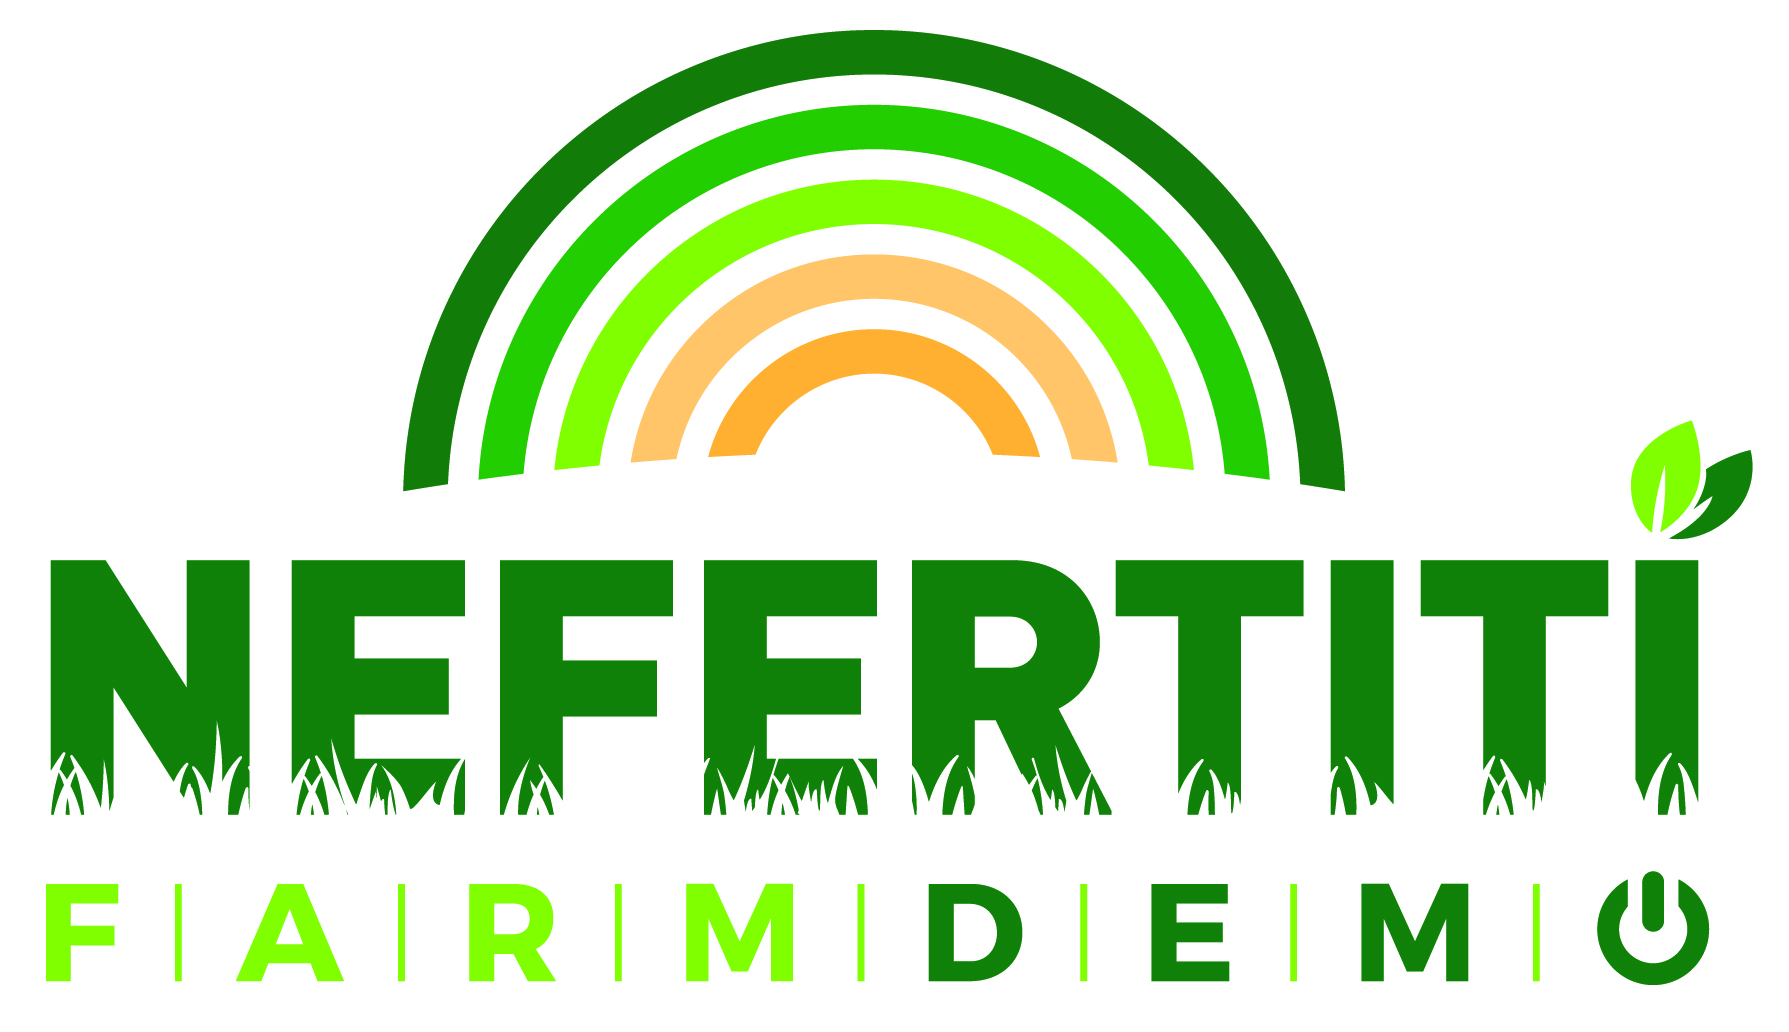 Horizon2020 project NEFERTITI: farmer-to-farmer learning in whole Europe